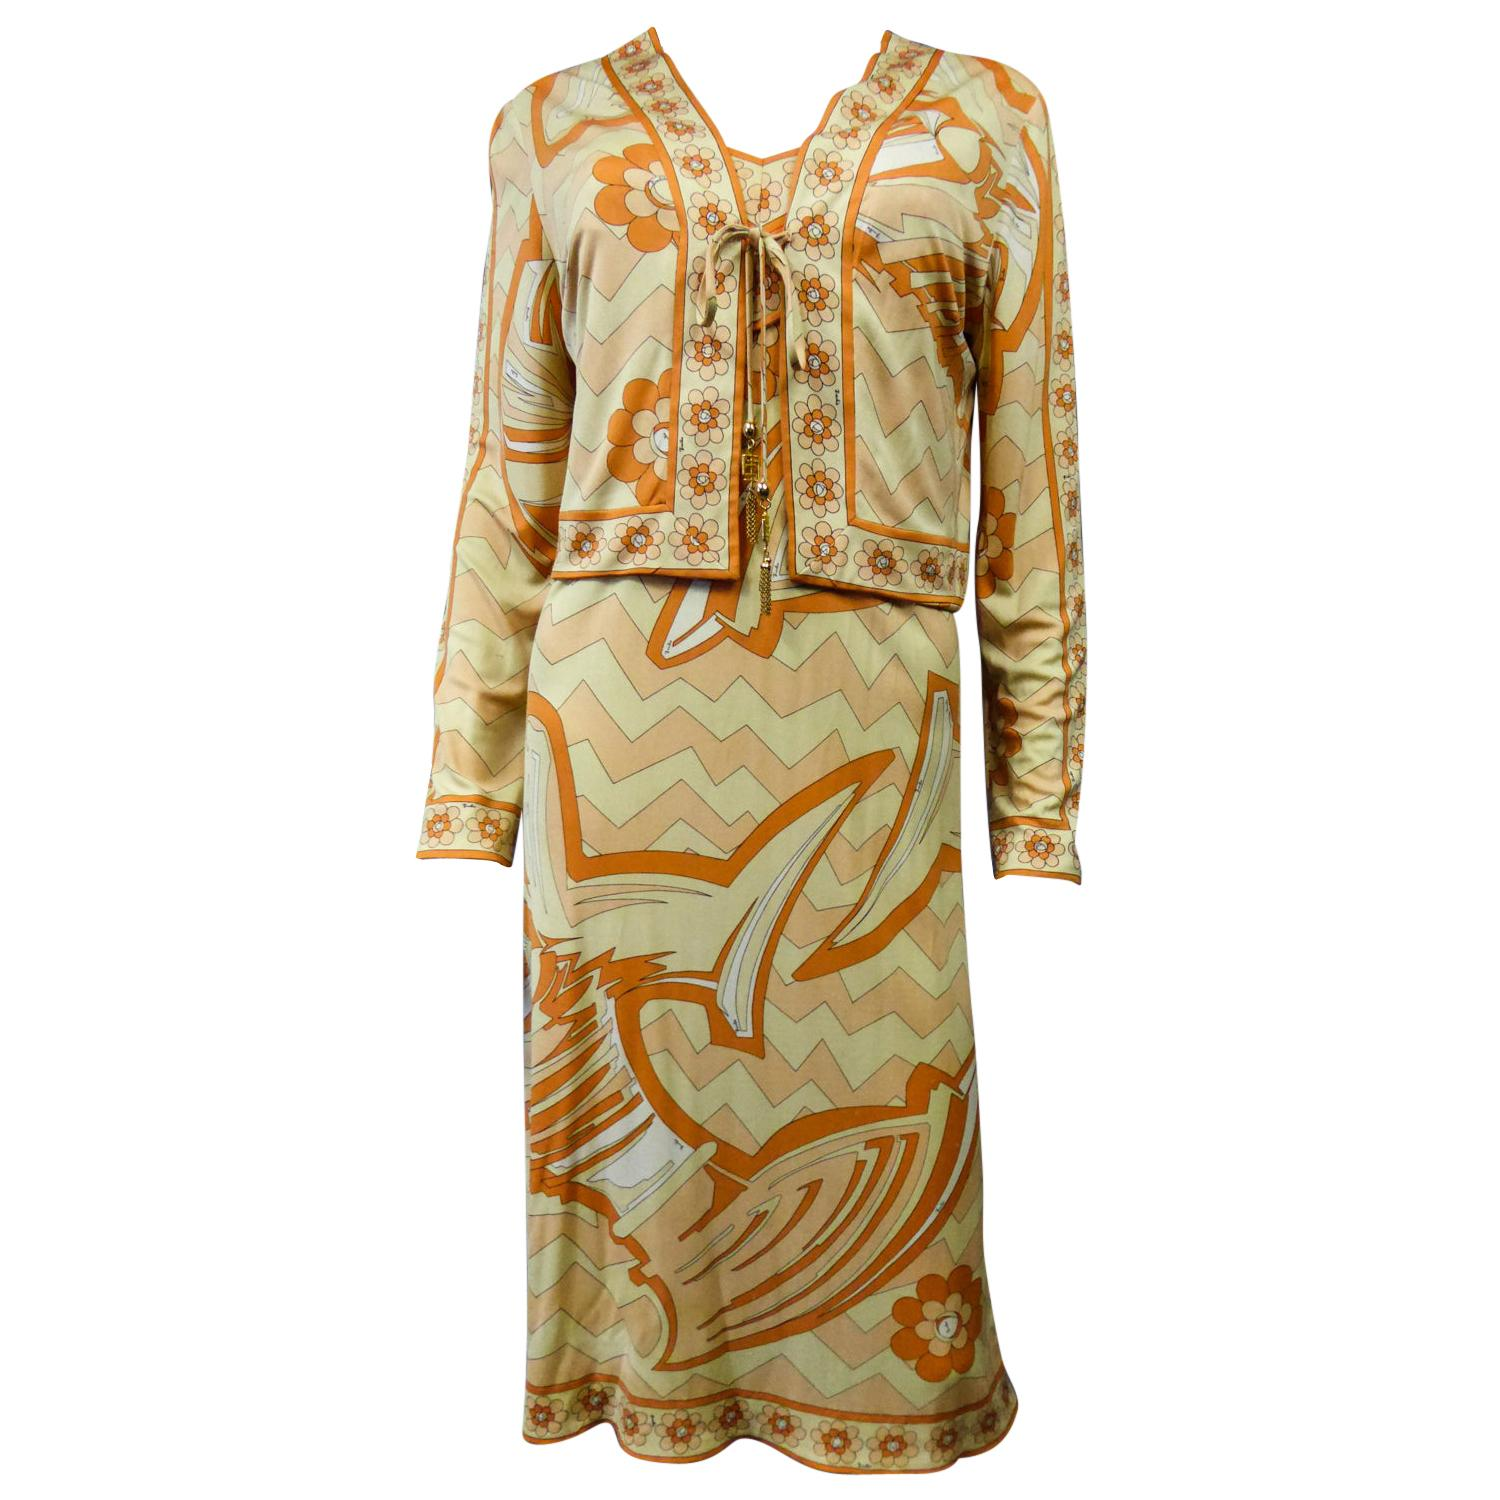 An Emilio Pucci Dress and Vest Set in Printed Jersey Circa 1960/1970